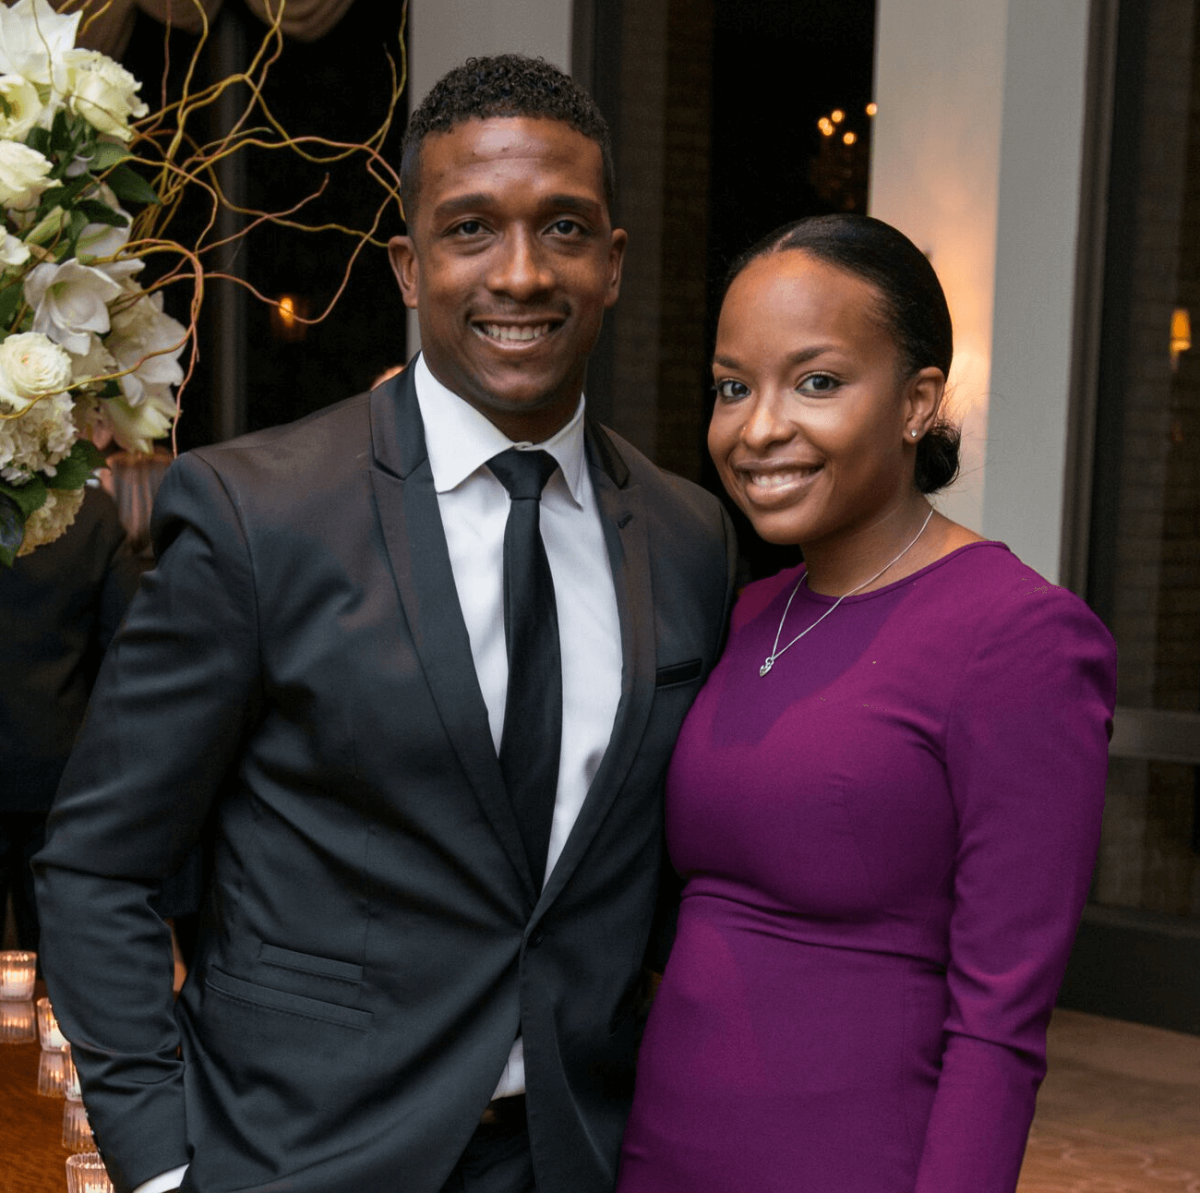 Jered Dillard, Sarita Dillard at Rice Honors Gala